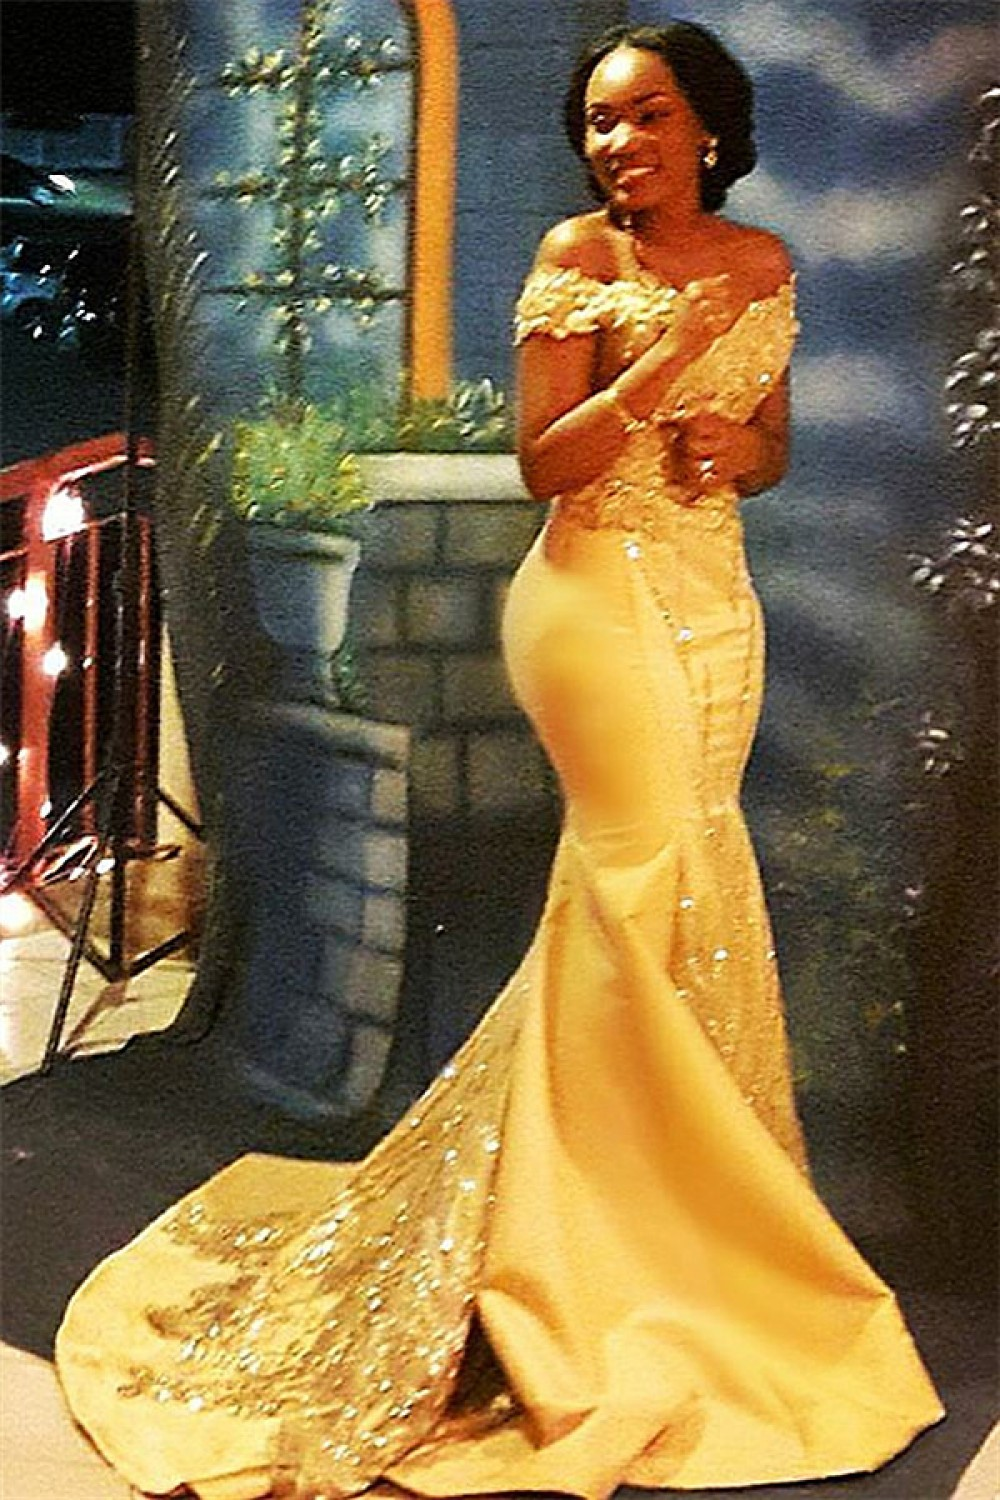 Mermaid Off The Shoulder Long Yellow Prom Dress Formal Evening Dresses 601456 In 2020 Prom Dresses Yellow Sequin Evening Gowns Mermaid Prom Dresses [ 1500 x 1000 Pixel ]